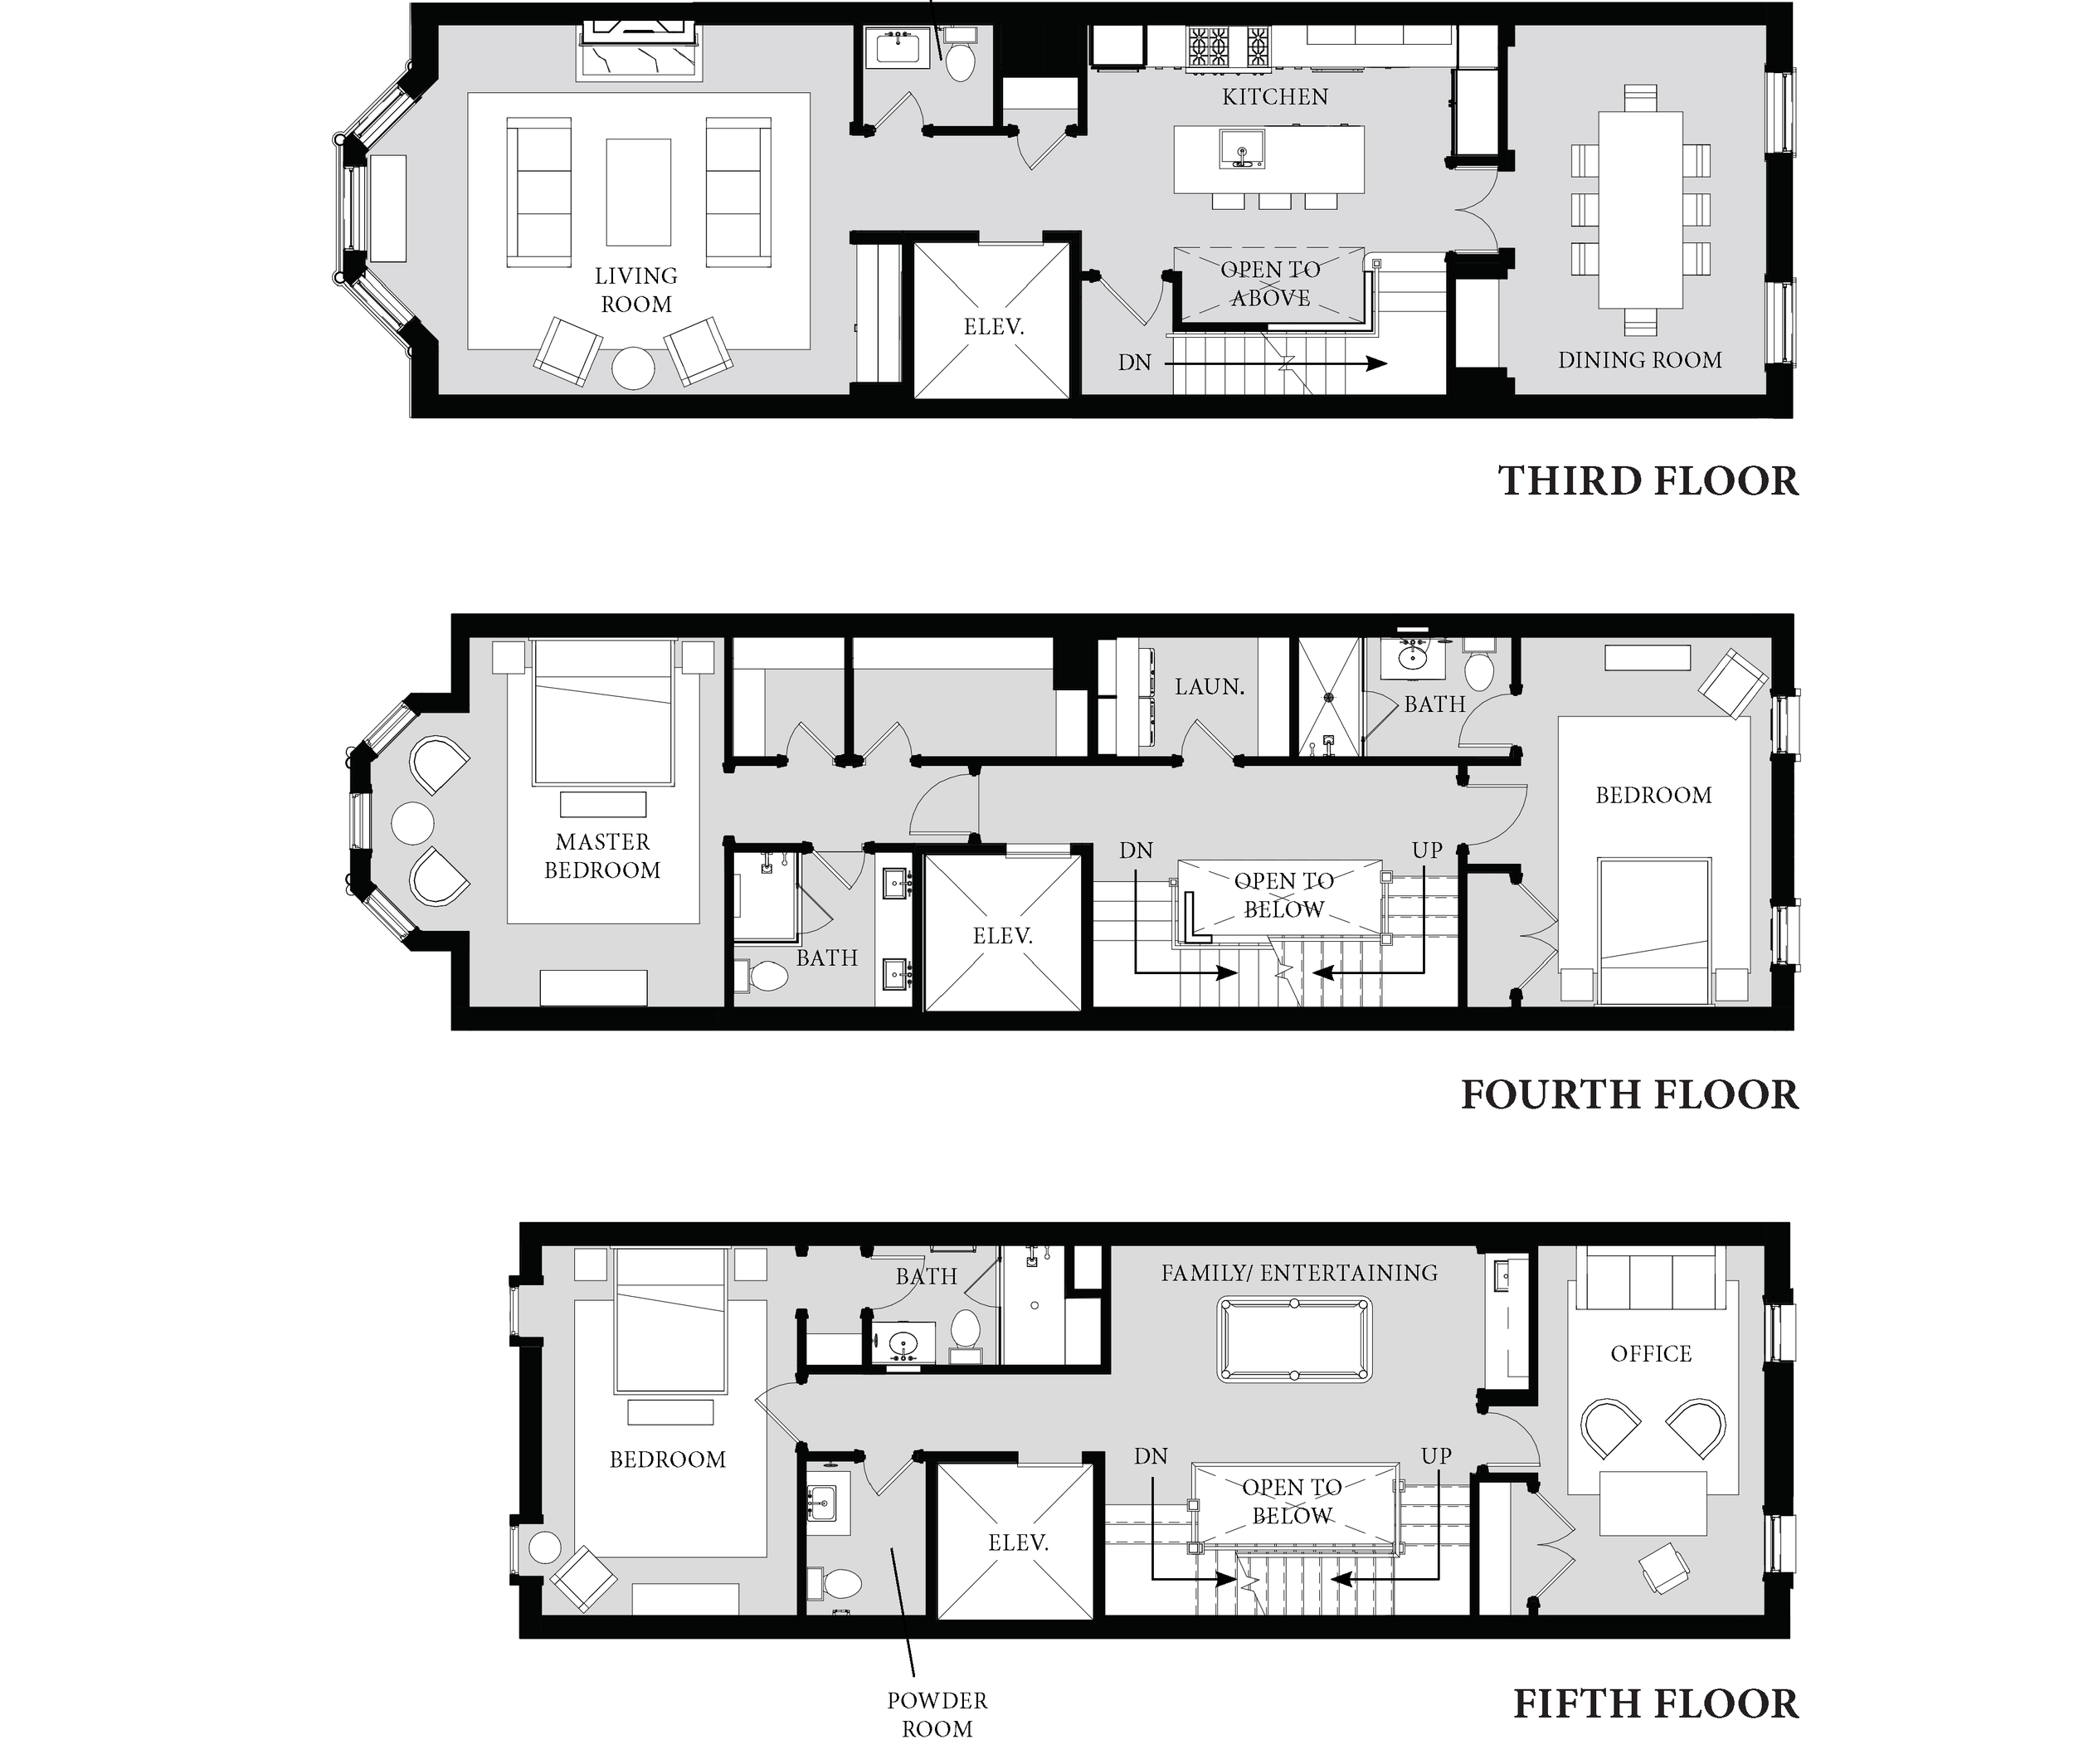 80CommAve_Final Floor Plans_High Res copy_Page_3.png